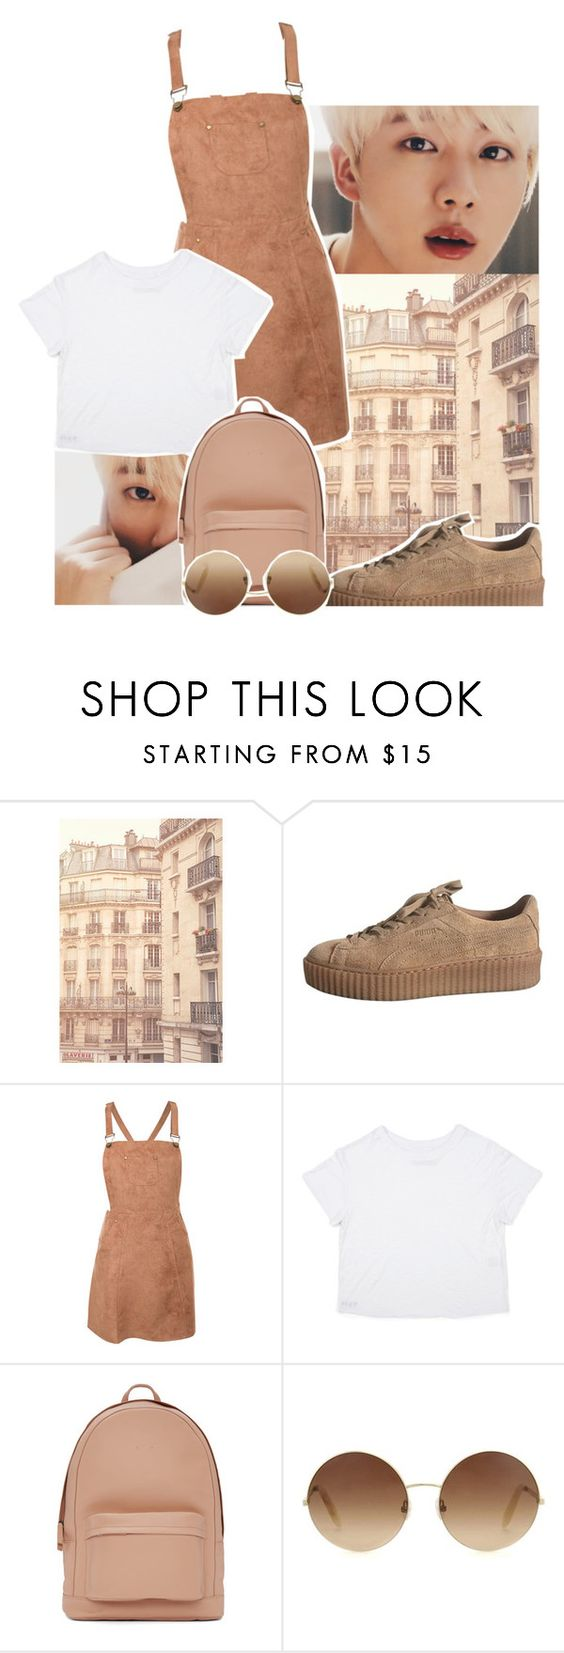 """""""jin brown"""" by bruhkyu ❤ liked on Polyvore featuring WALL, Pilot, PB 0110 and Victoria Beckham"""